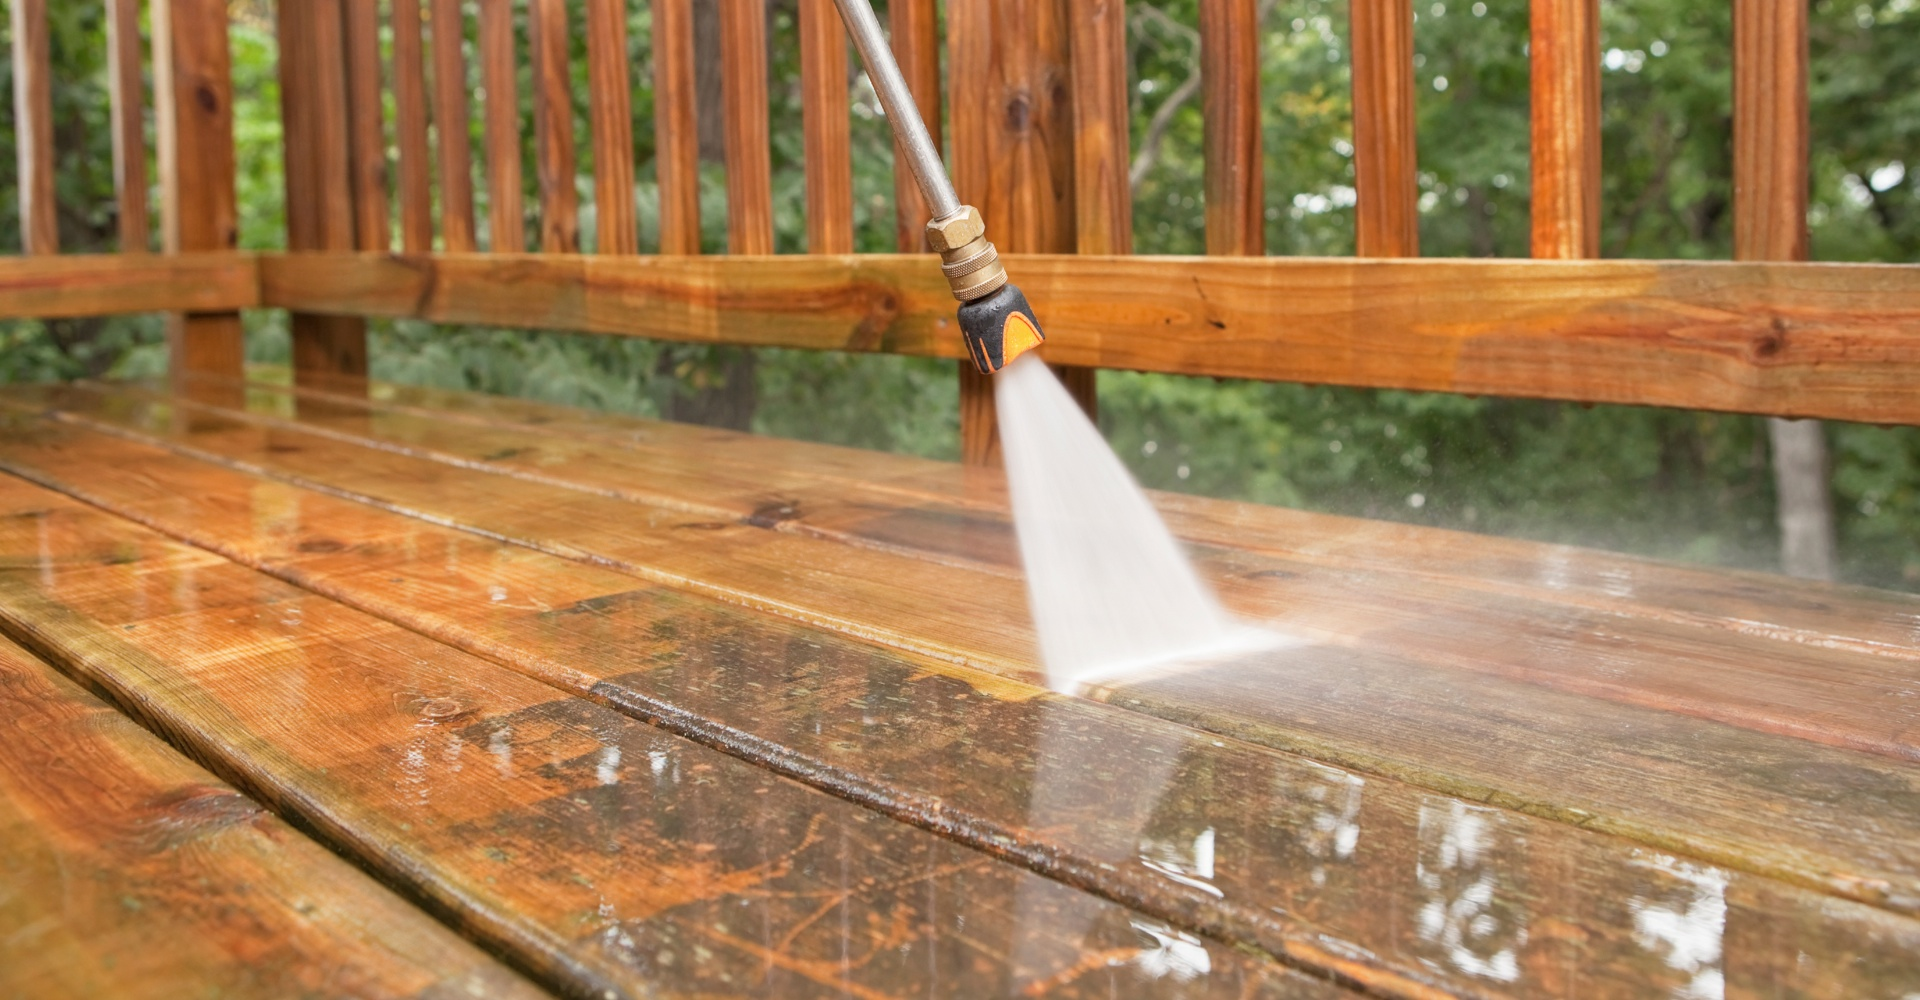 6 Key Benefits of Pressure Washing Your Home